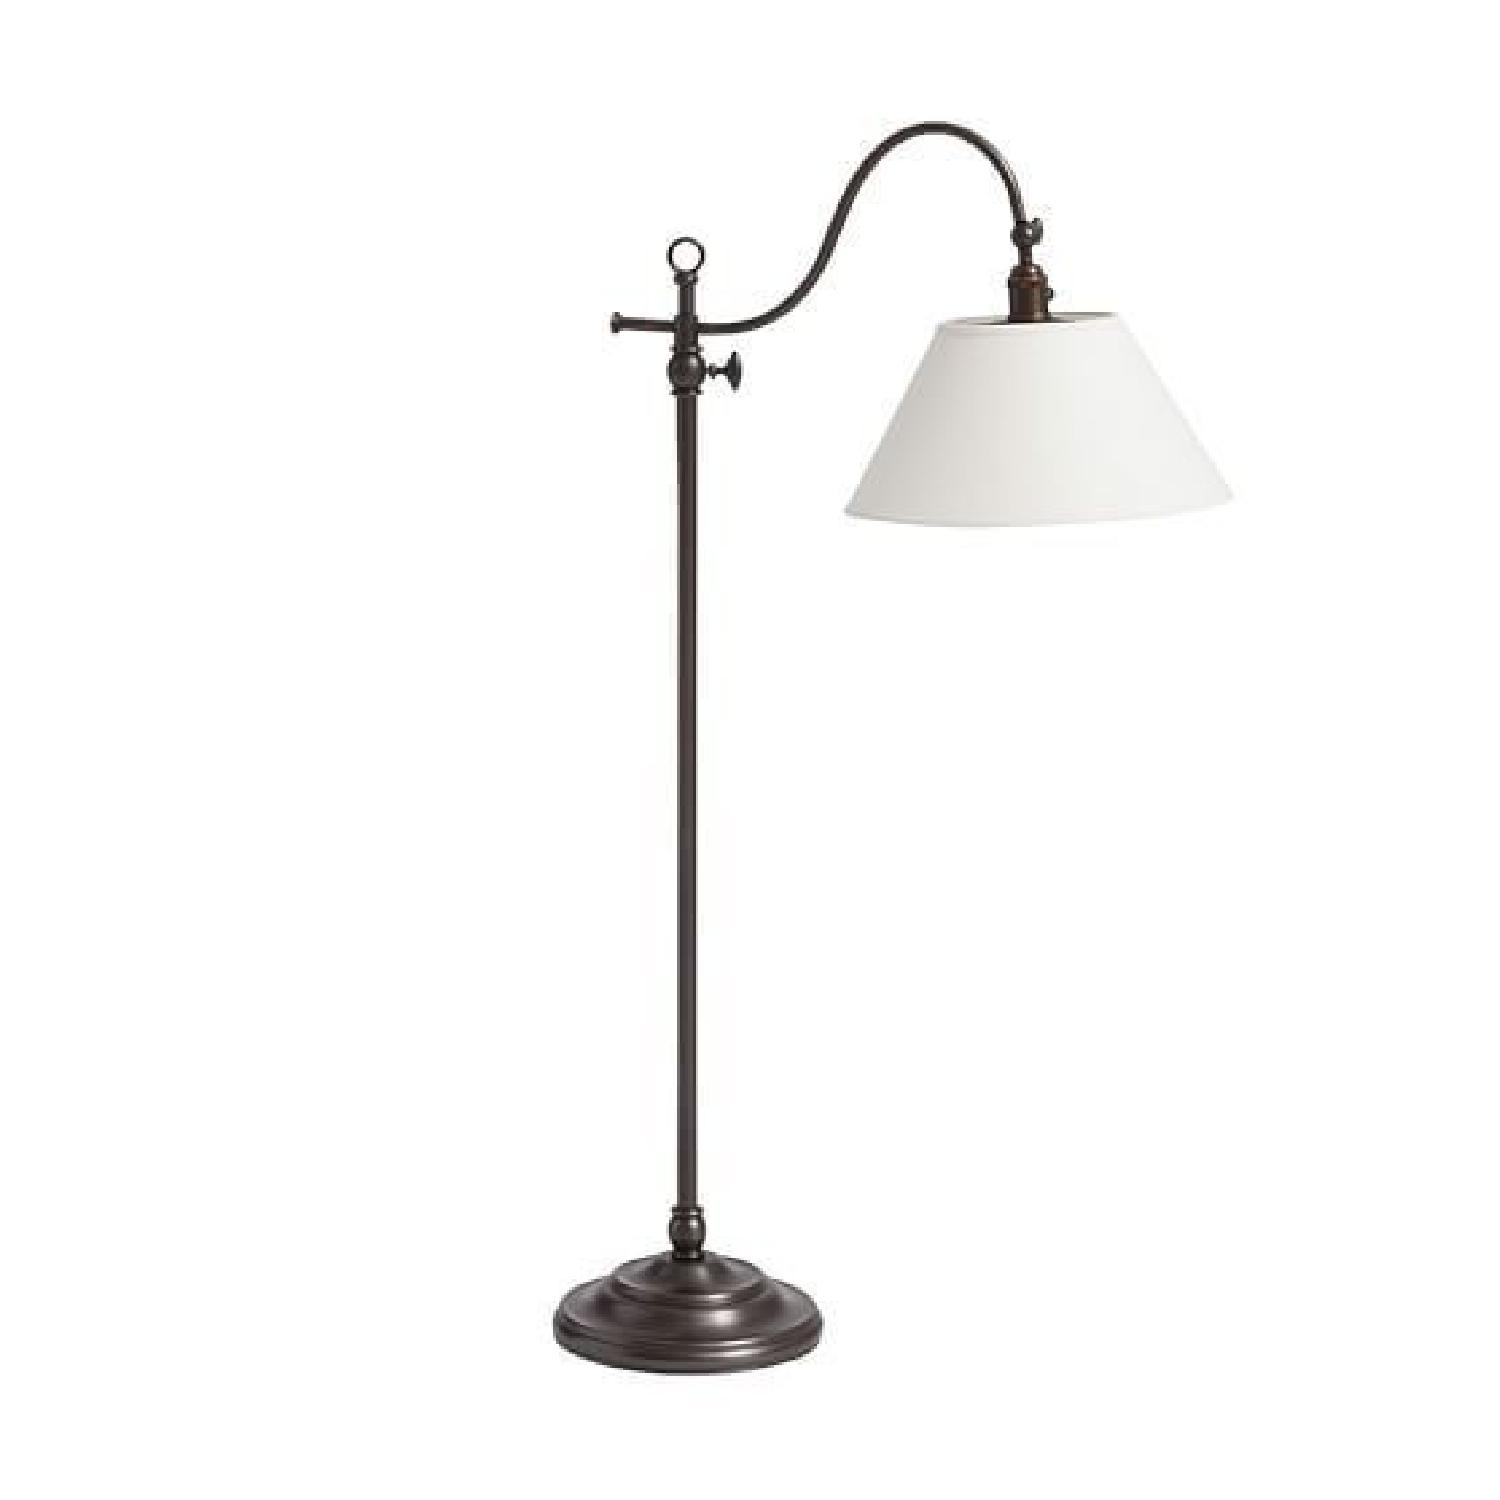 Pottery Barn Antique Bronze Floor Lamp